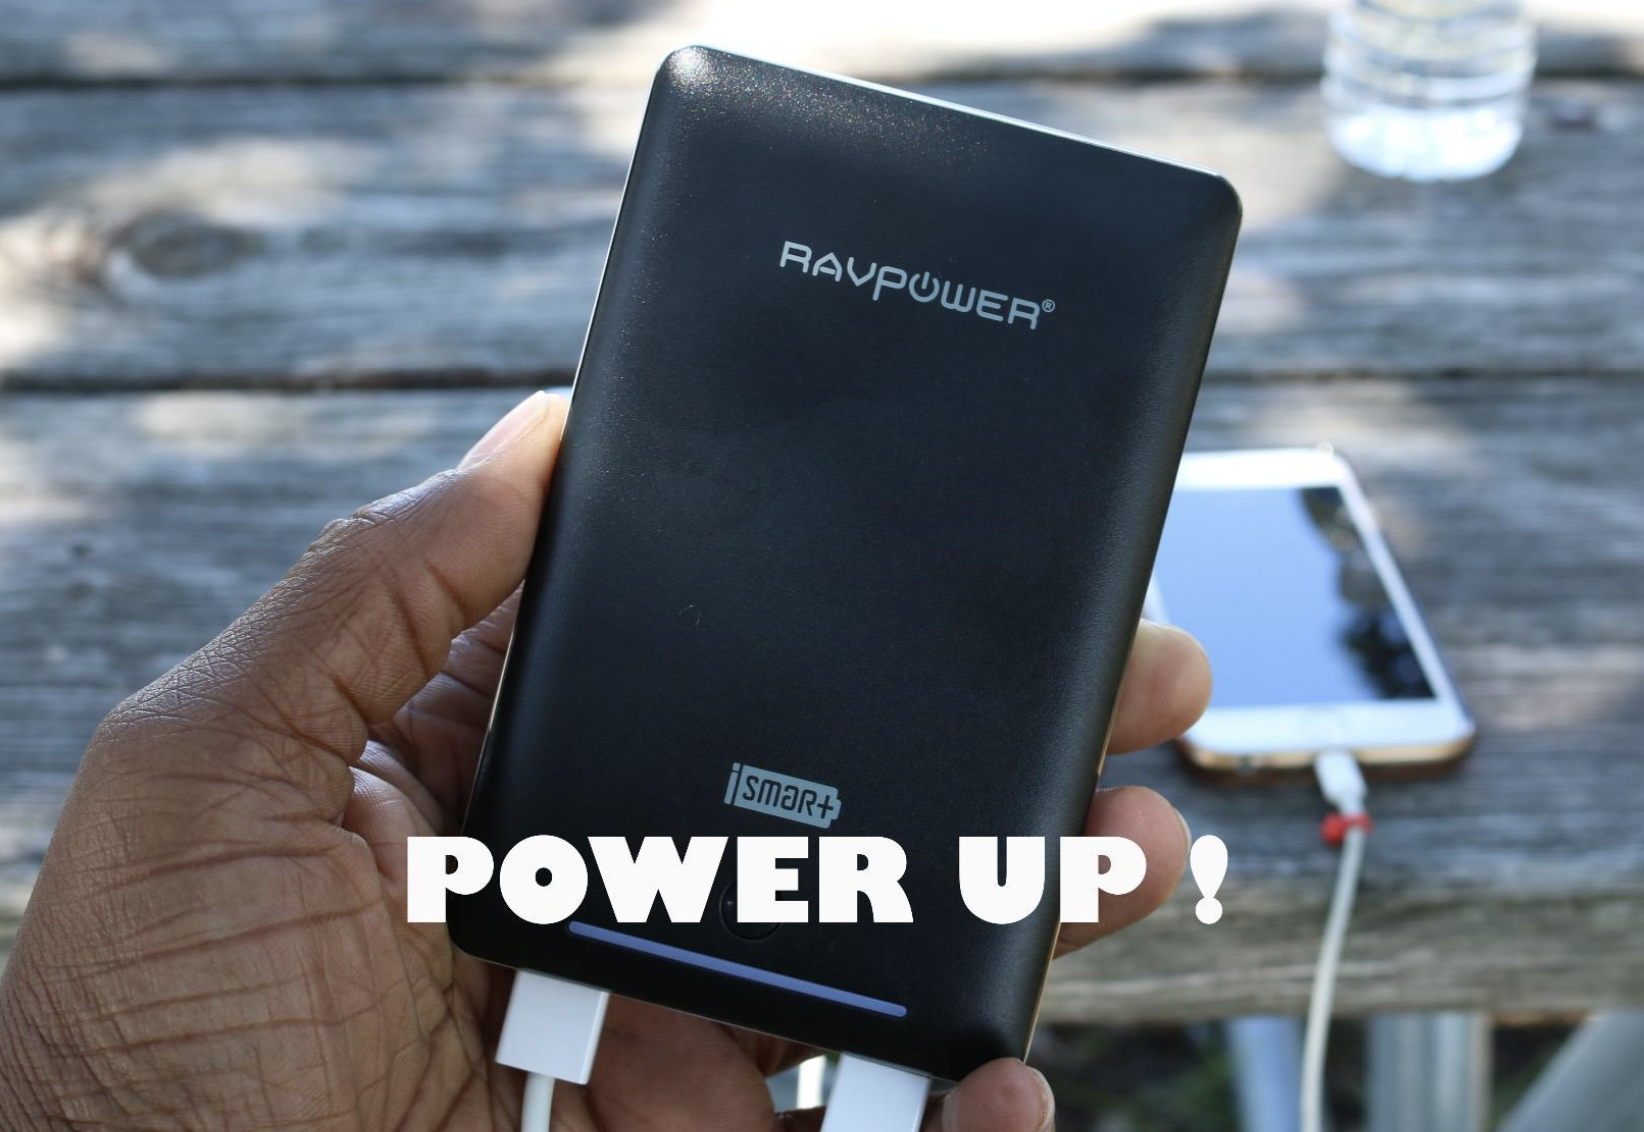 Reviewer holding the power bank in their hand while it charges a phone